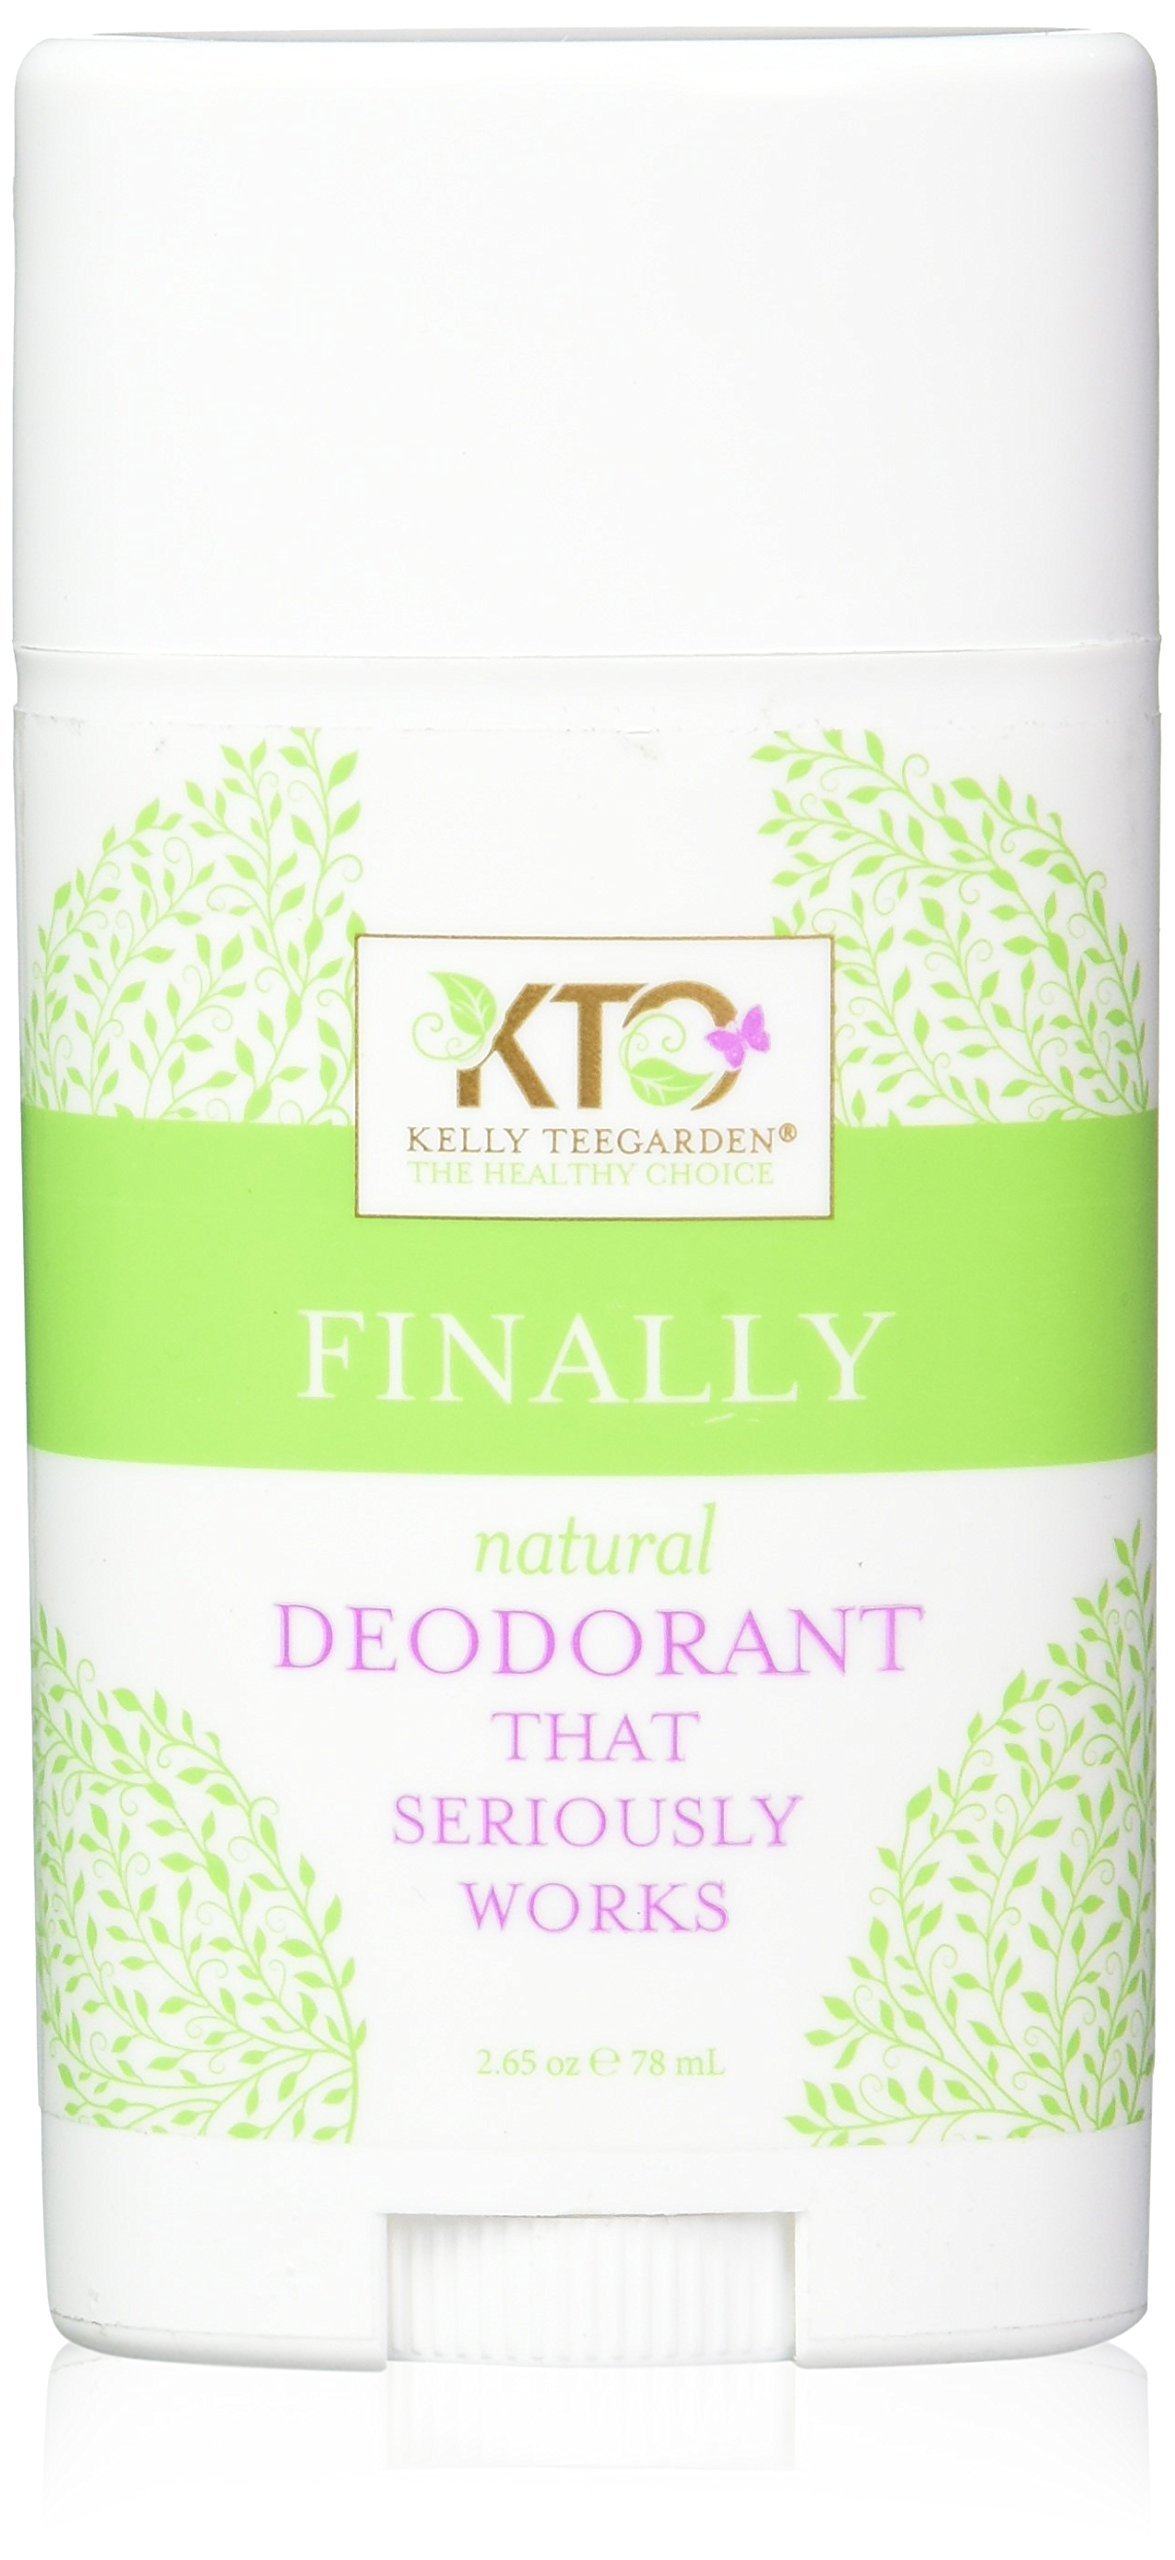 Kelly Teegarden finally - Natural deodorant that Seriously Works, 2.65 Ounce